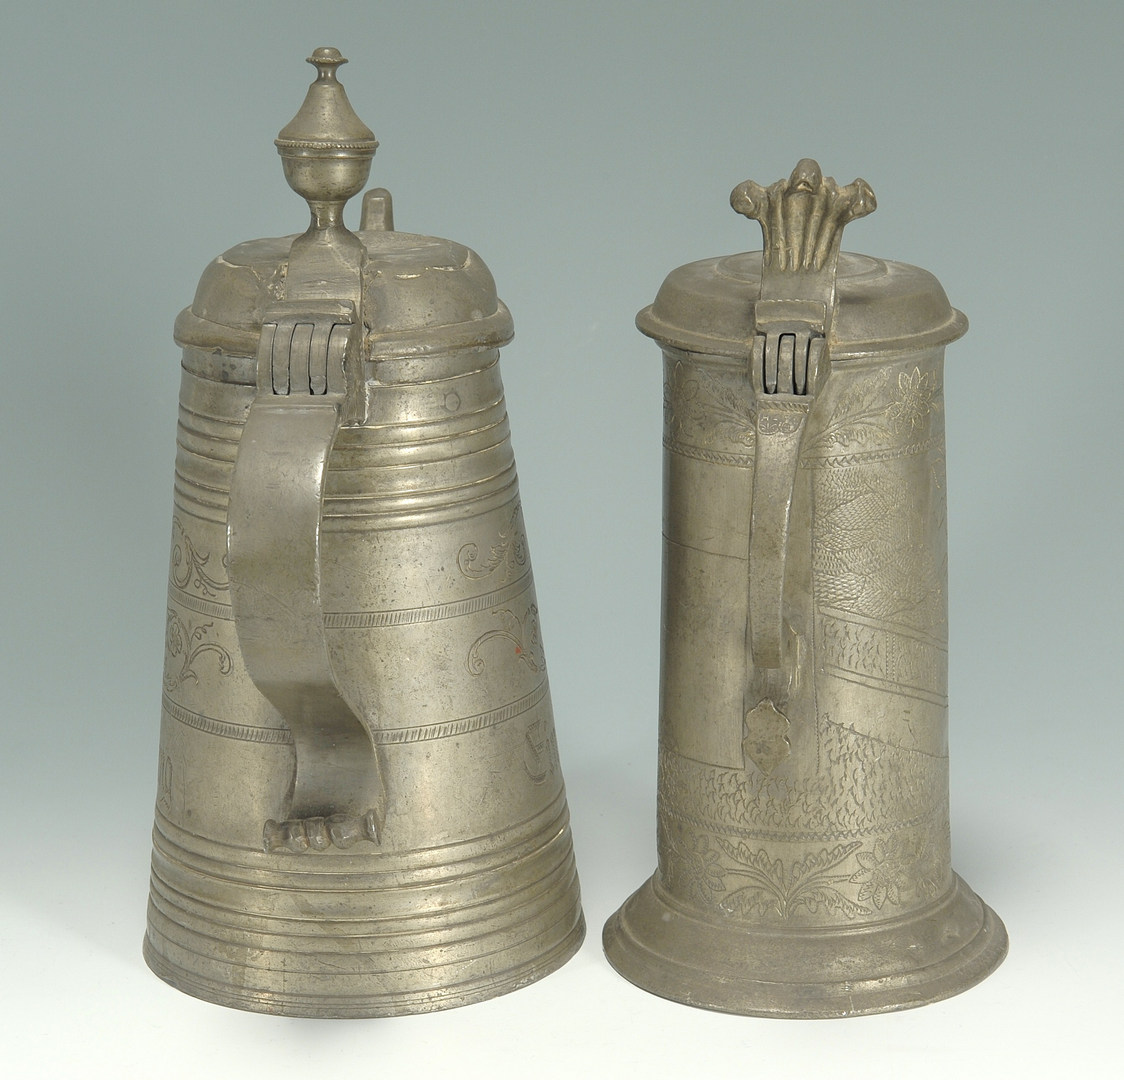 Lot 409: 2 Pewter flagons, 1 dated 1765 with wrigglework de